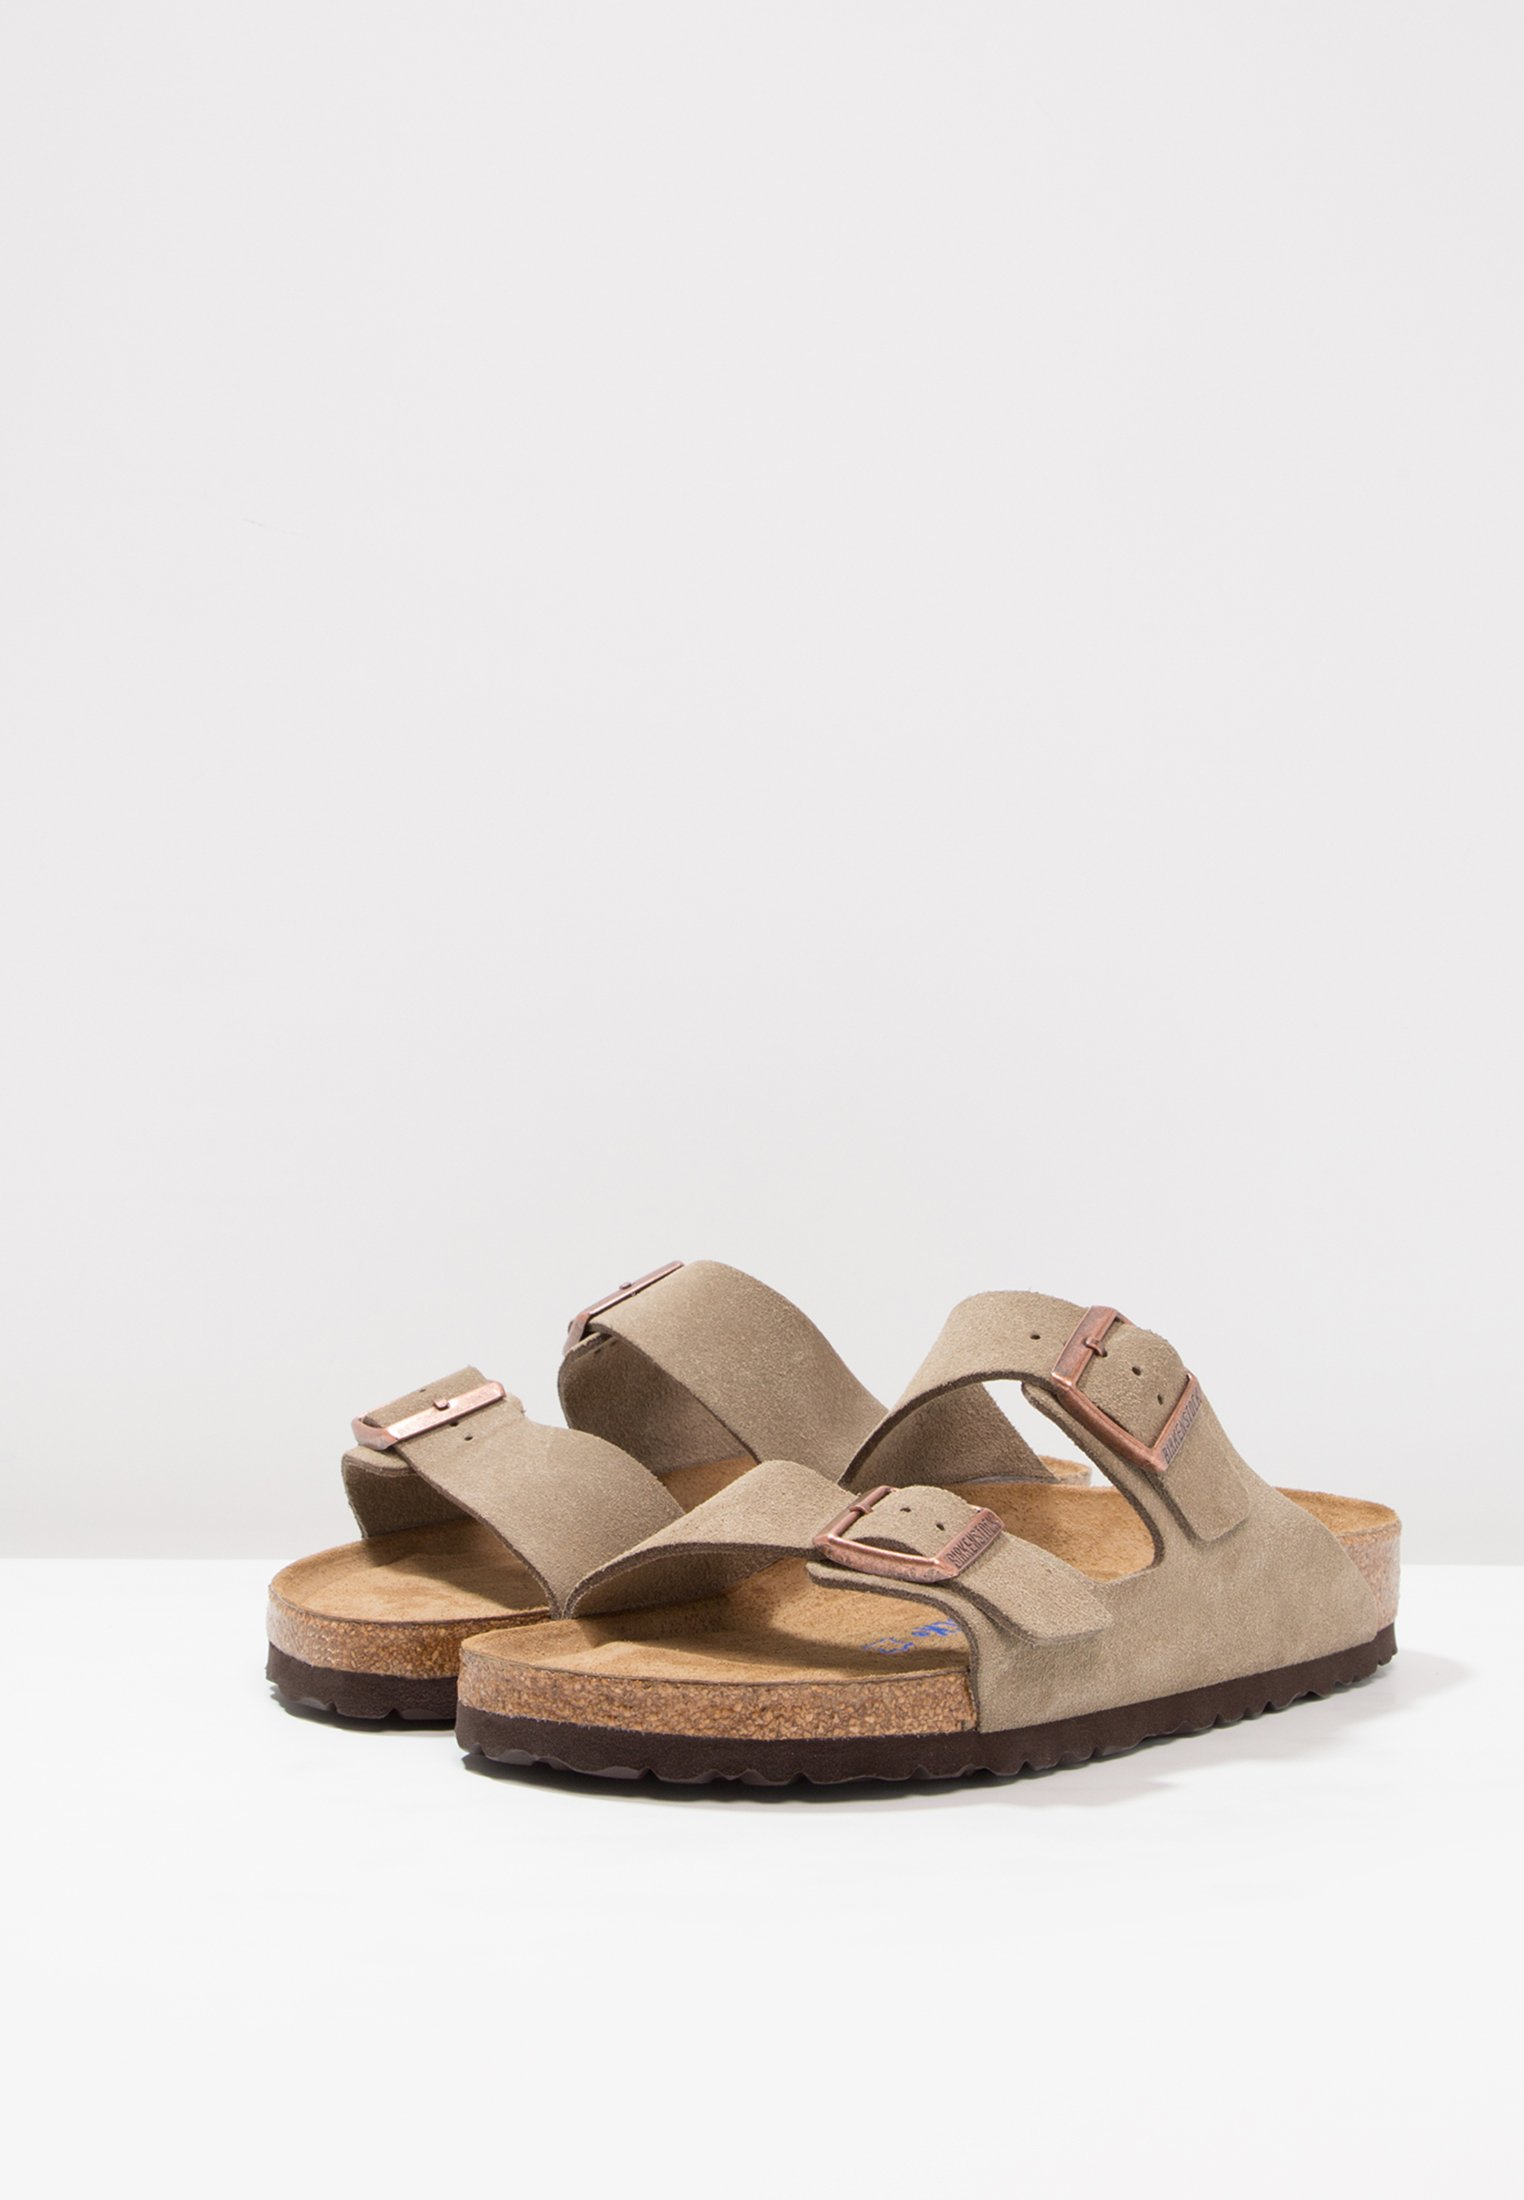 ARIZONA FOOTBED Birkenstock NARROW SOFT taupe FITMulestaupe rQCtshd